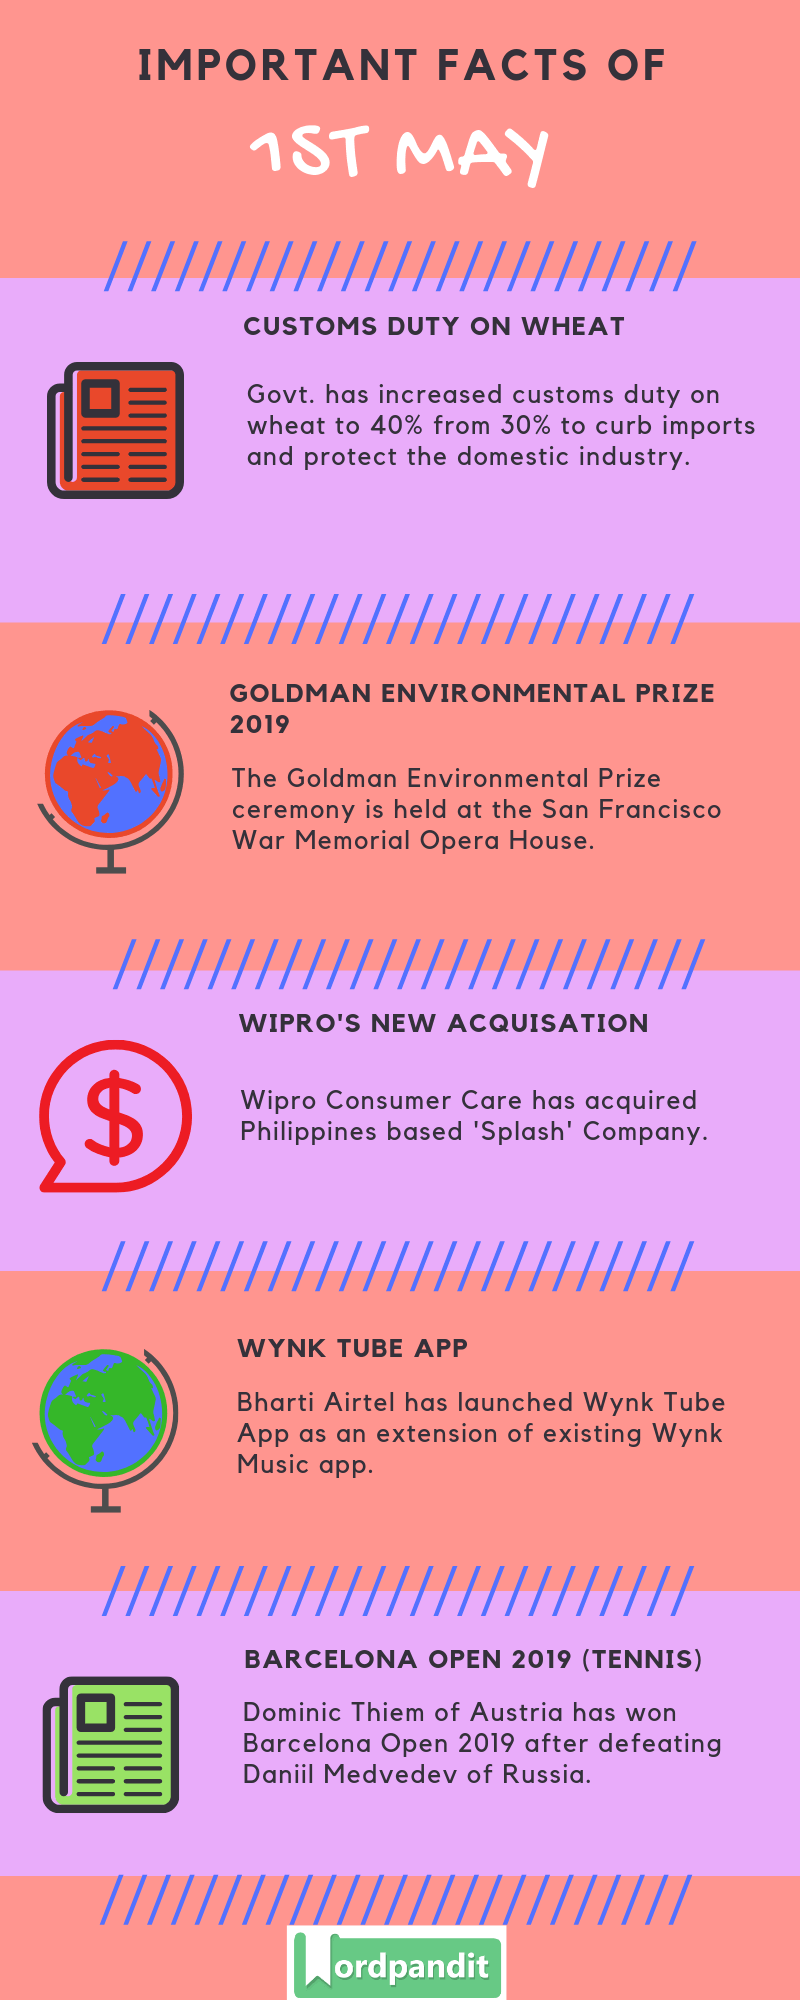 Daily Current Affairs 1 May 2019 Current Affairs Quiz 1 May 2019 Current Affairs Infographic